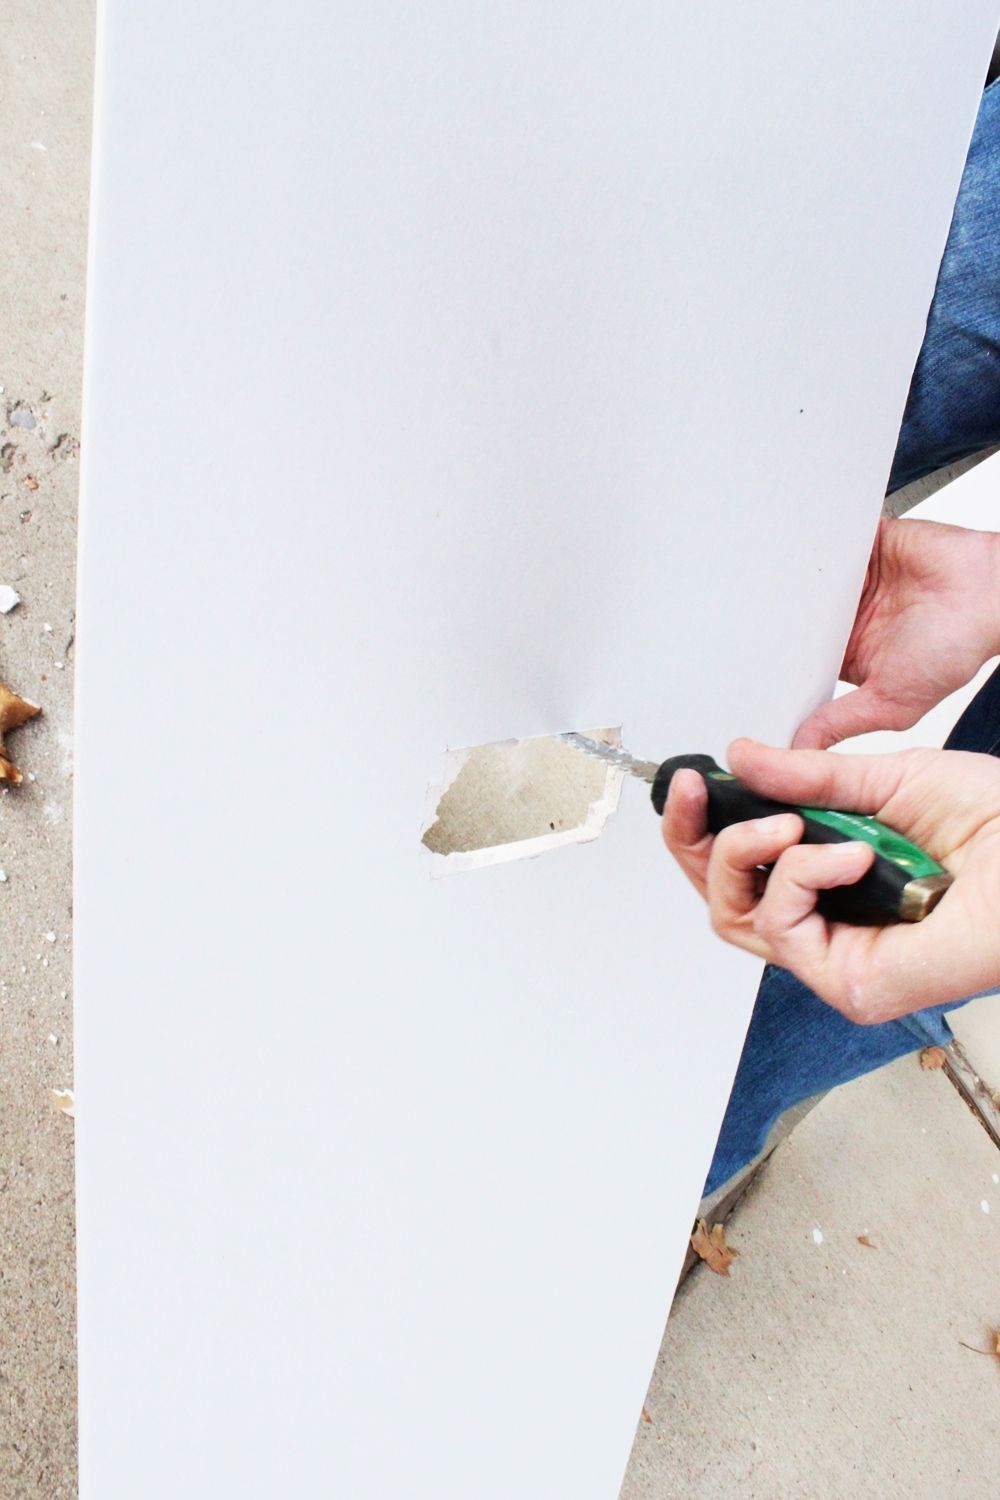 A drywall knife is the easiest tool